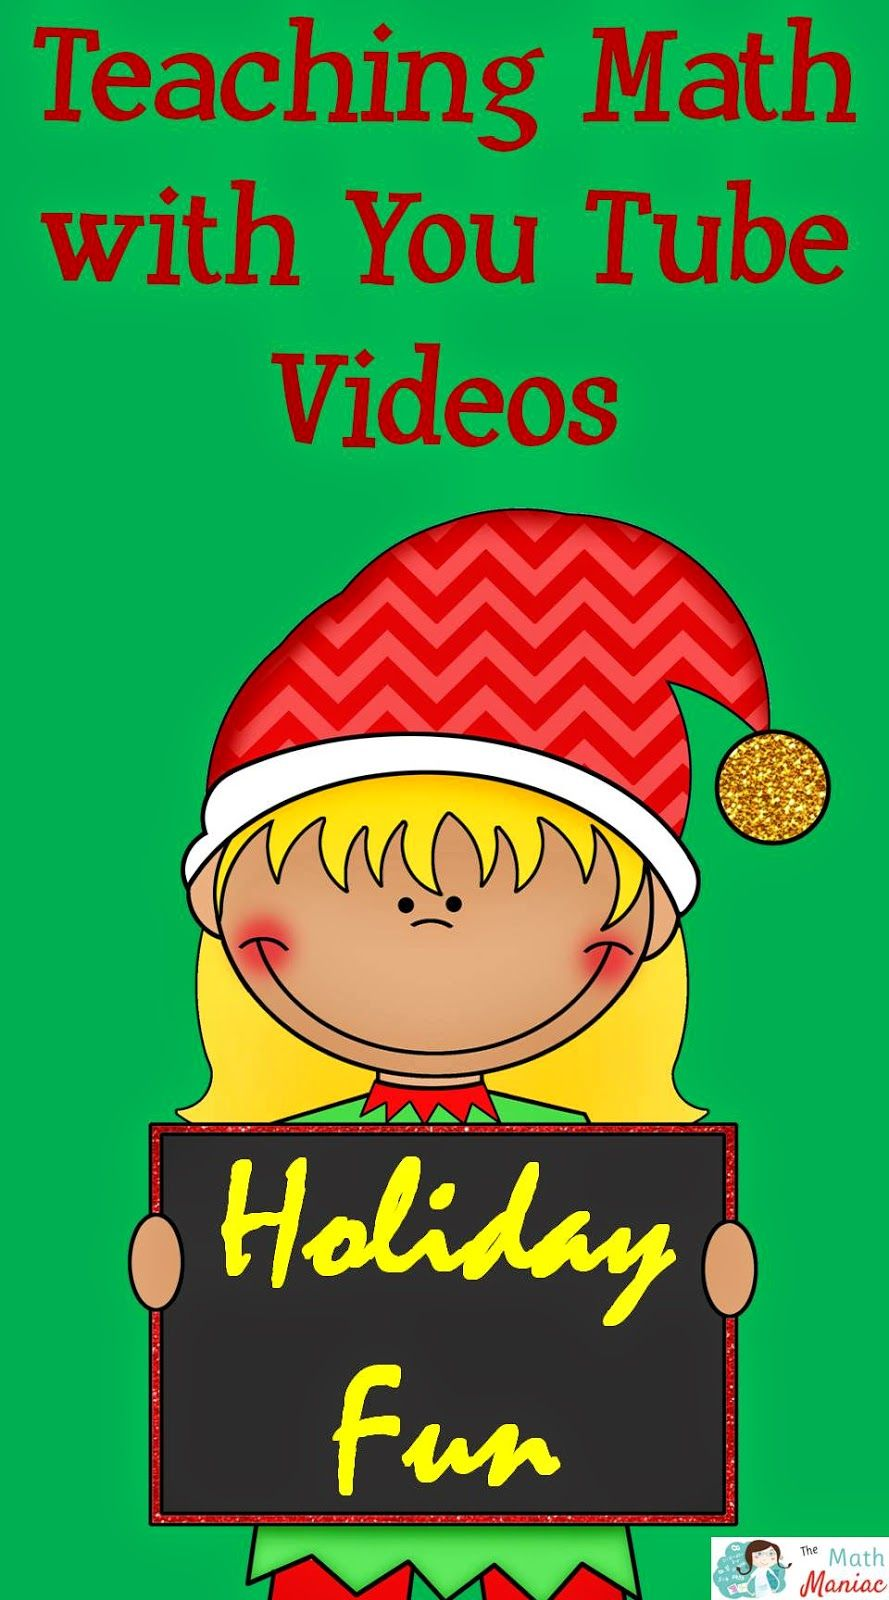 A few of my favorite Christmas themed videos and songs for teaching math and for having fun in December!